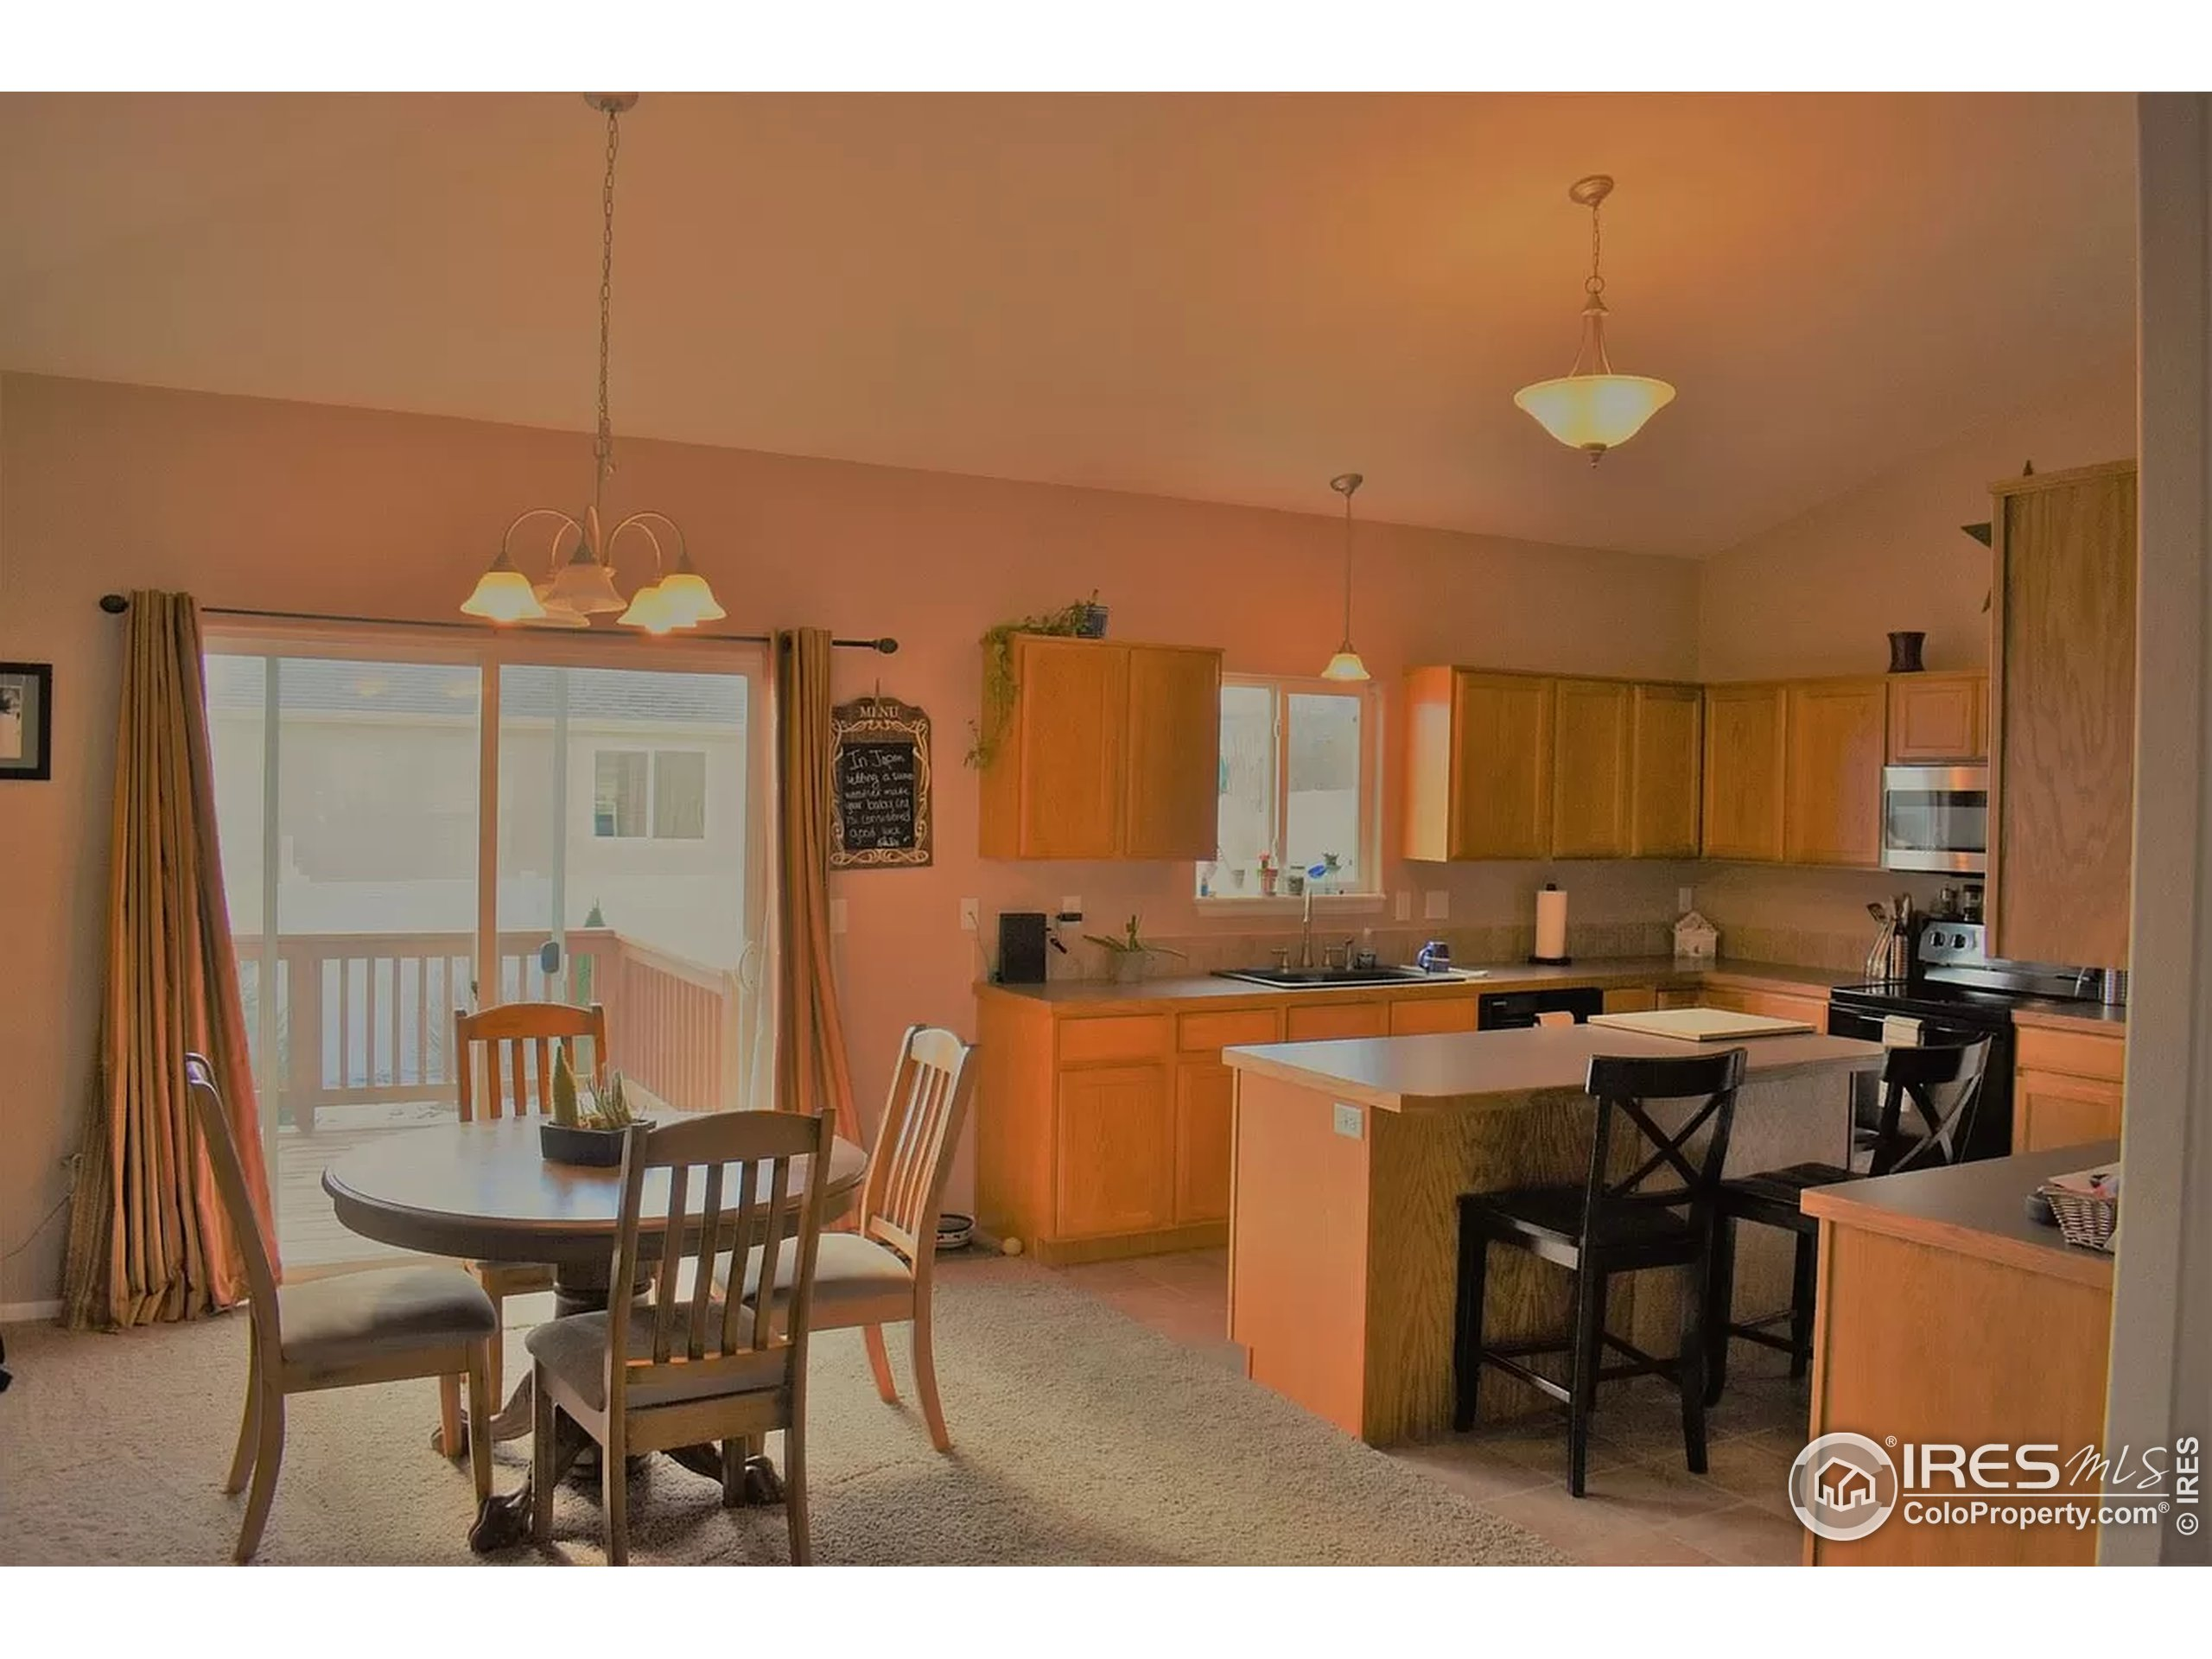 kitchen and dining area staged